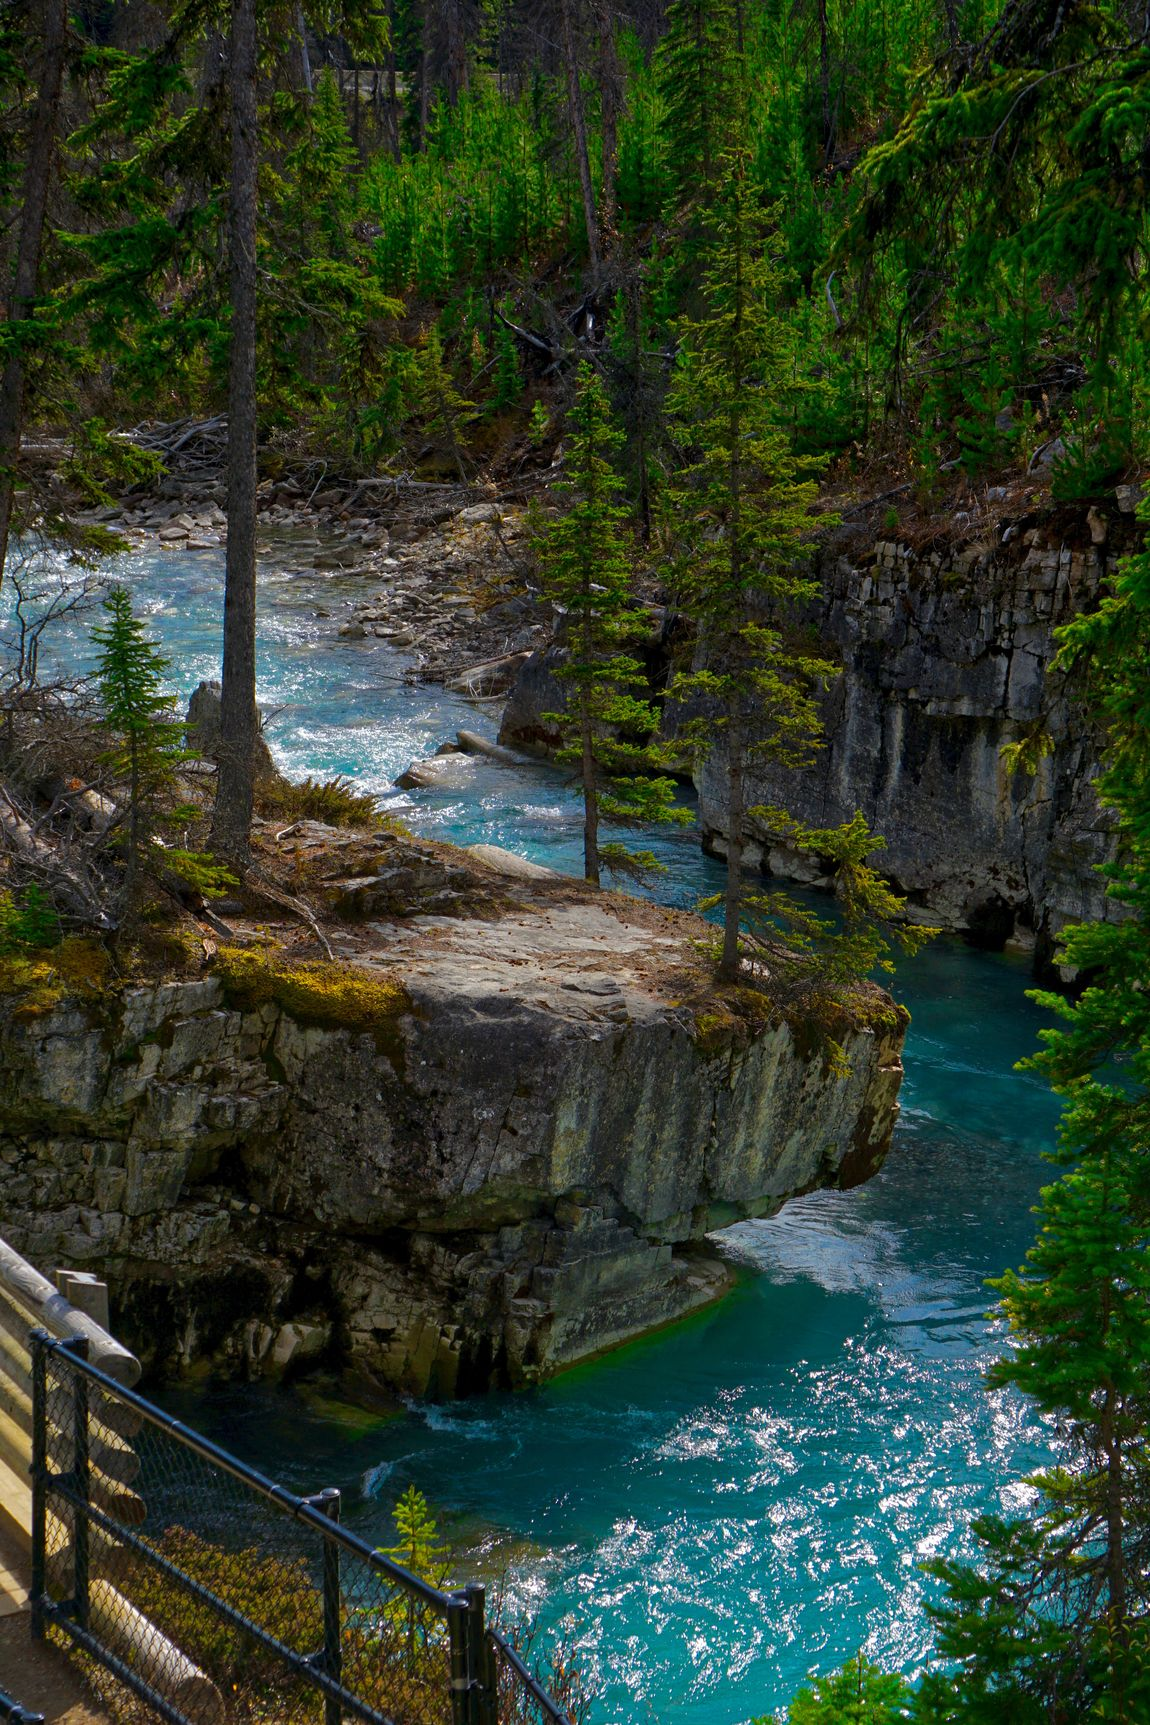 Teal Waters of Marble Canyon Beauty In Nature Canyon Day Eco Tourism Forest Landscape Nature Nature Reserve No People Outdoors River Rock Formation Scenics Teal Water Tree Vacations Water Waterfall